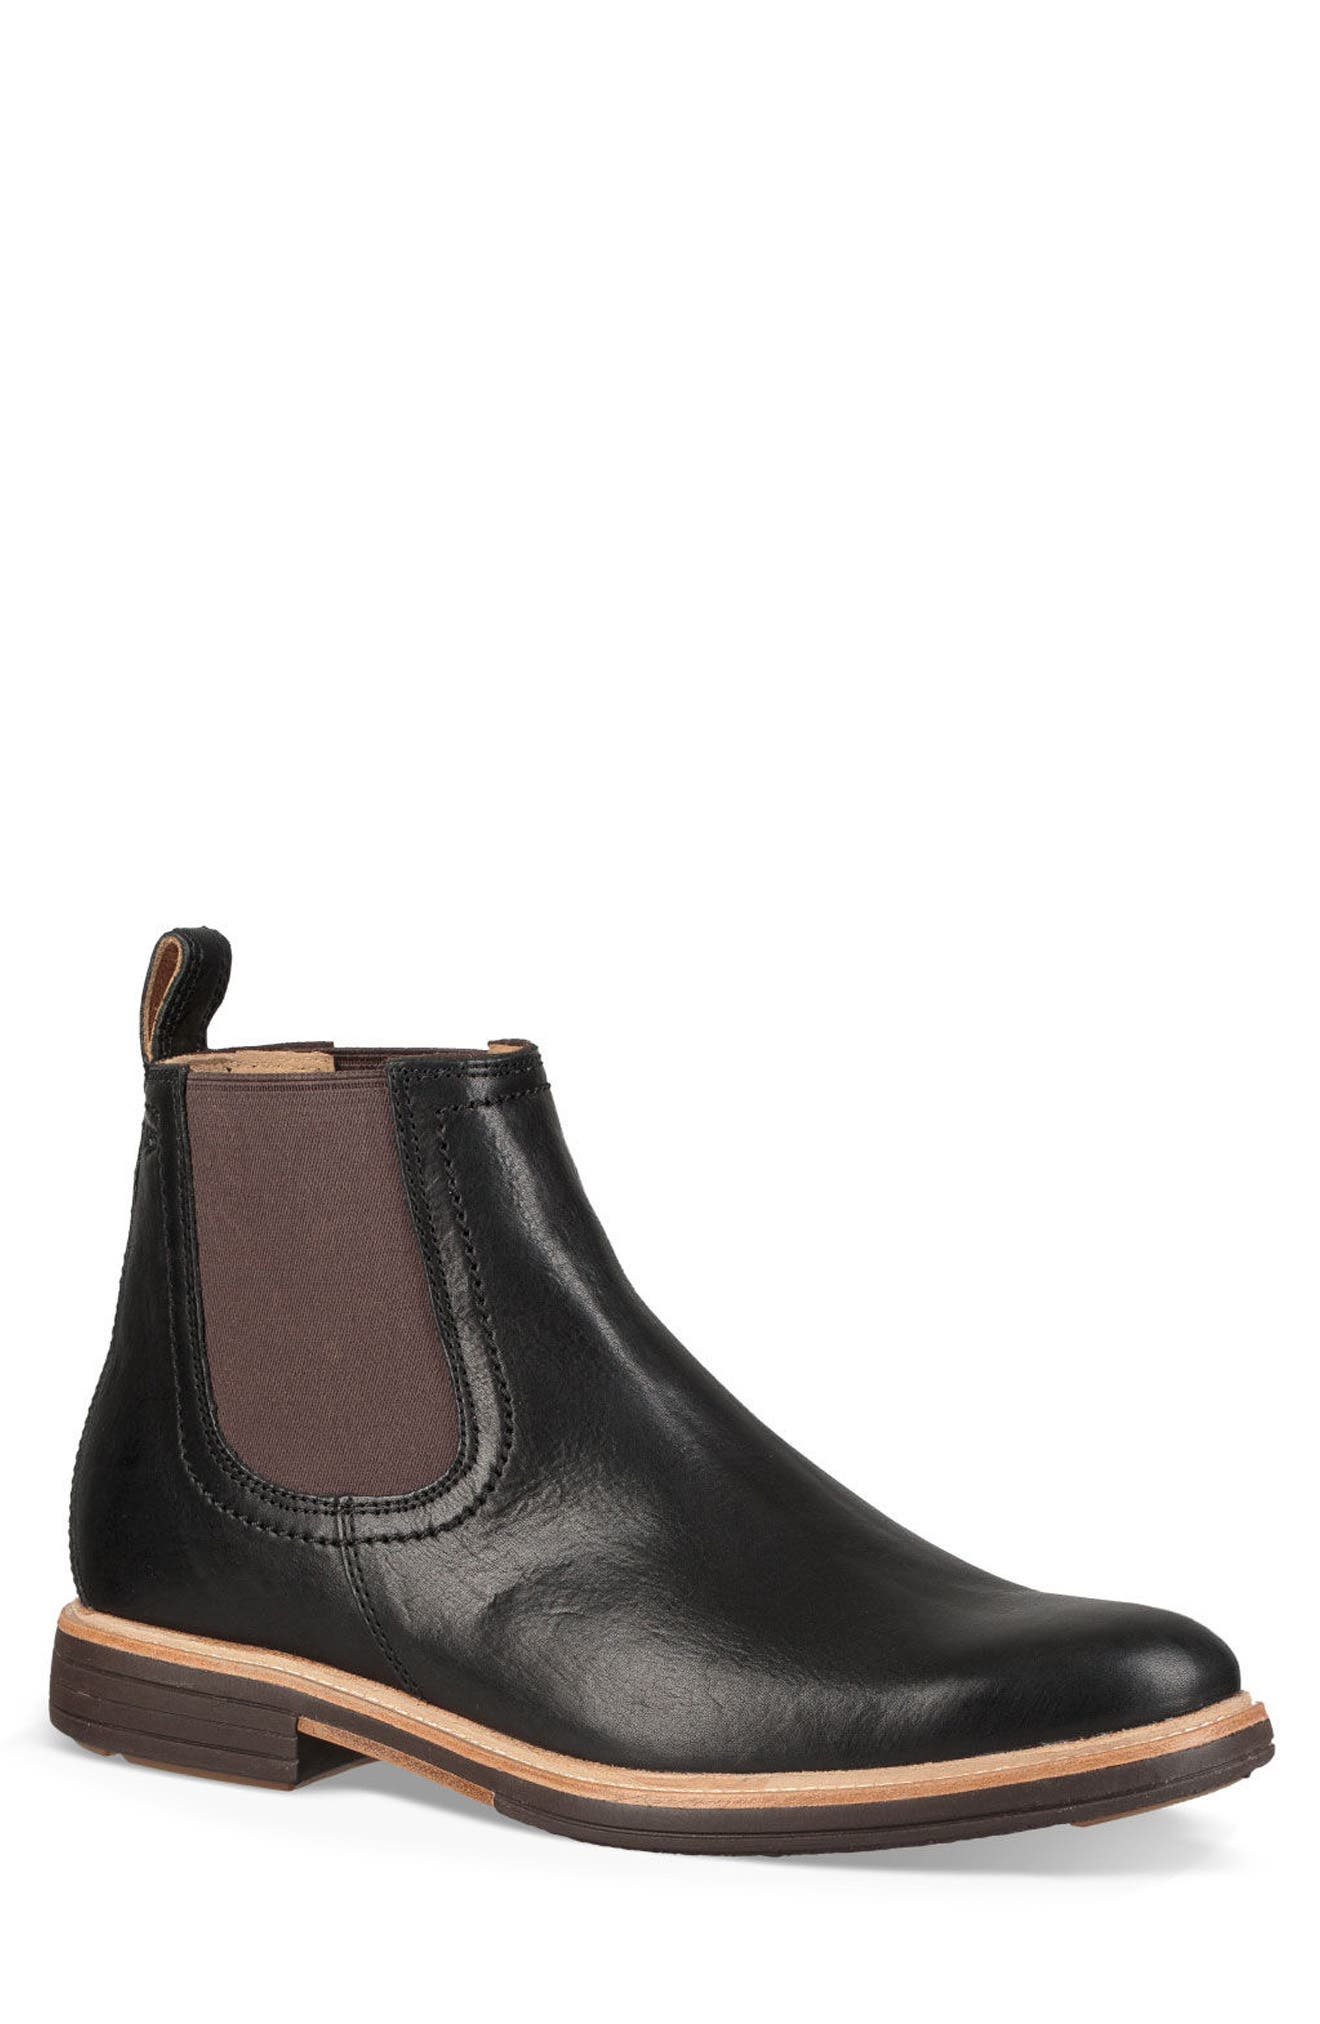 UGG<SUP>®</SUP>, Baldvin Chelsea Boot, Main thumbnail 1, color, BLACK LEATHER/SUEDE